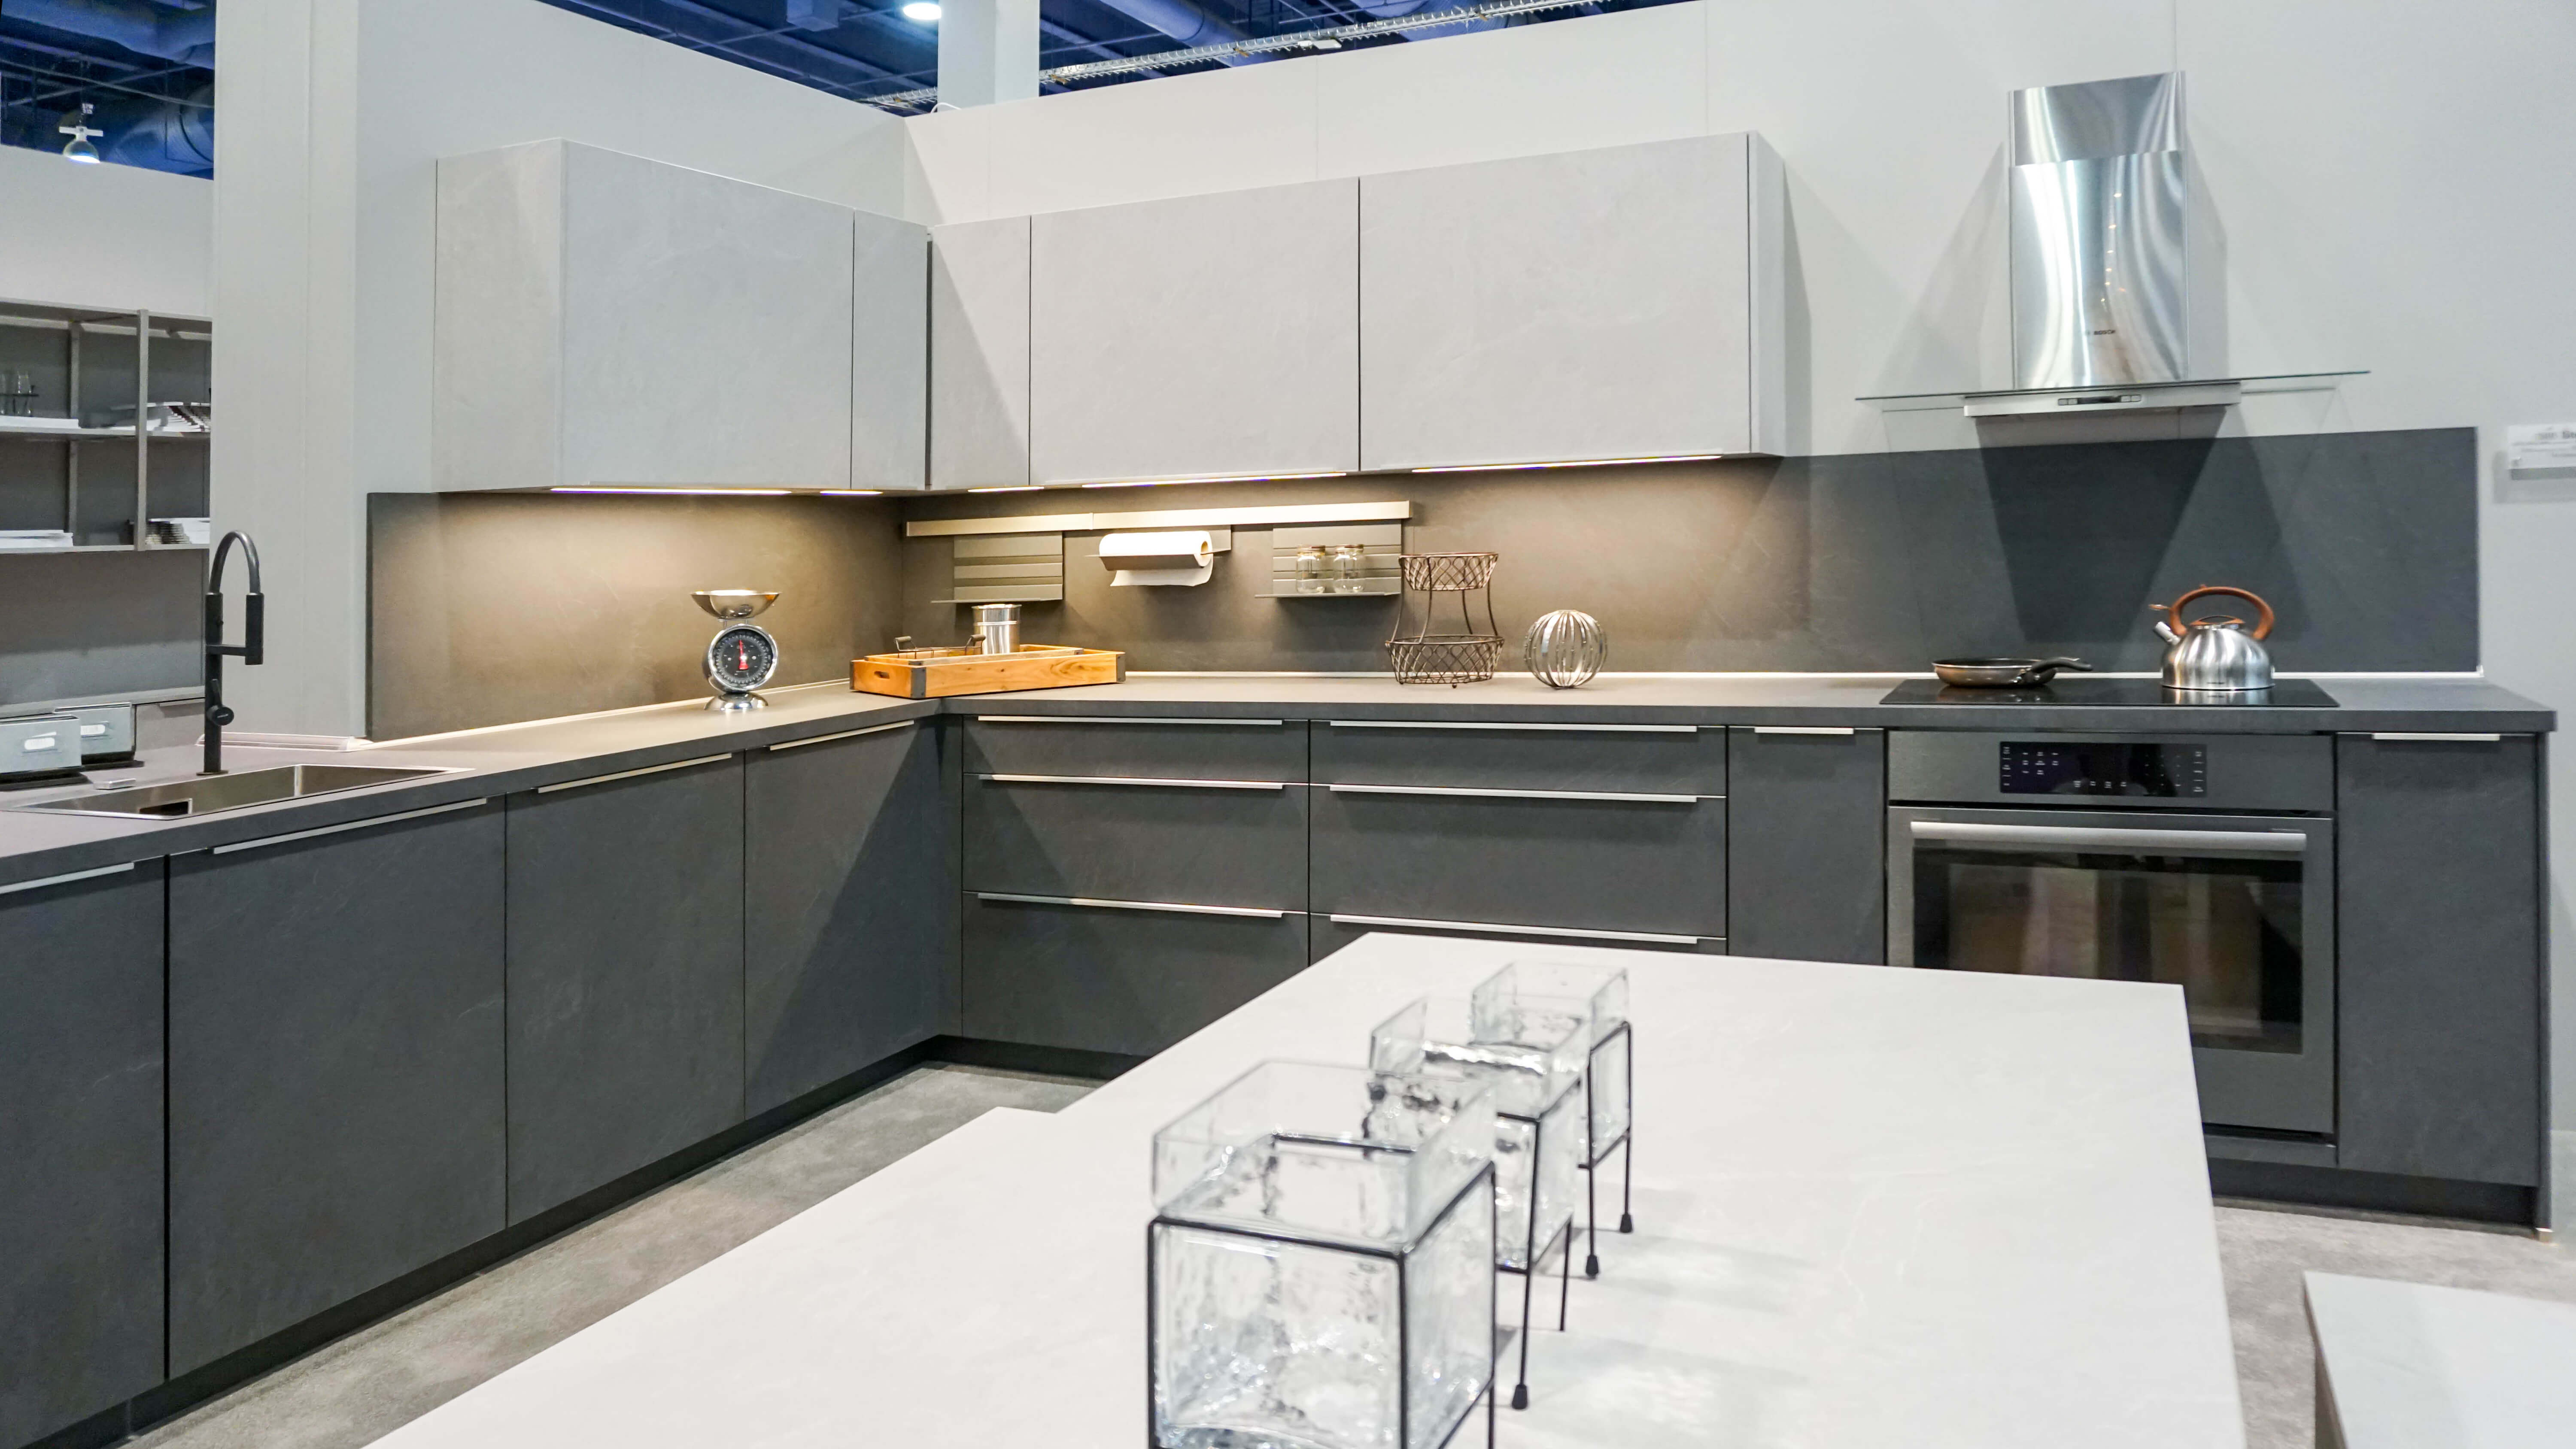 The clean sleek look of the all white monochromatic kitchens used to be everywhere in kitchen design praised for its simplicity and serene look